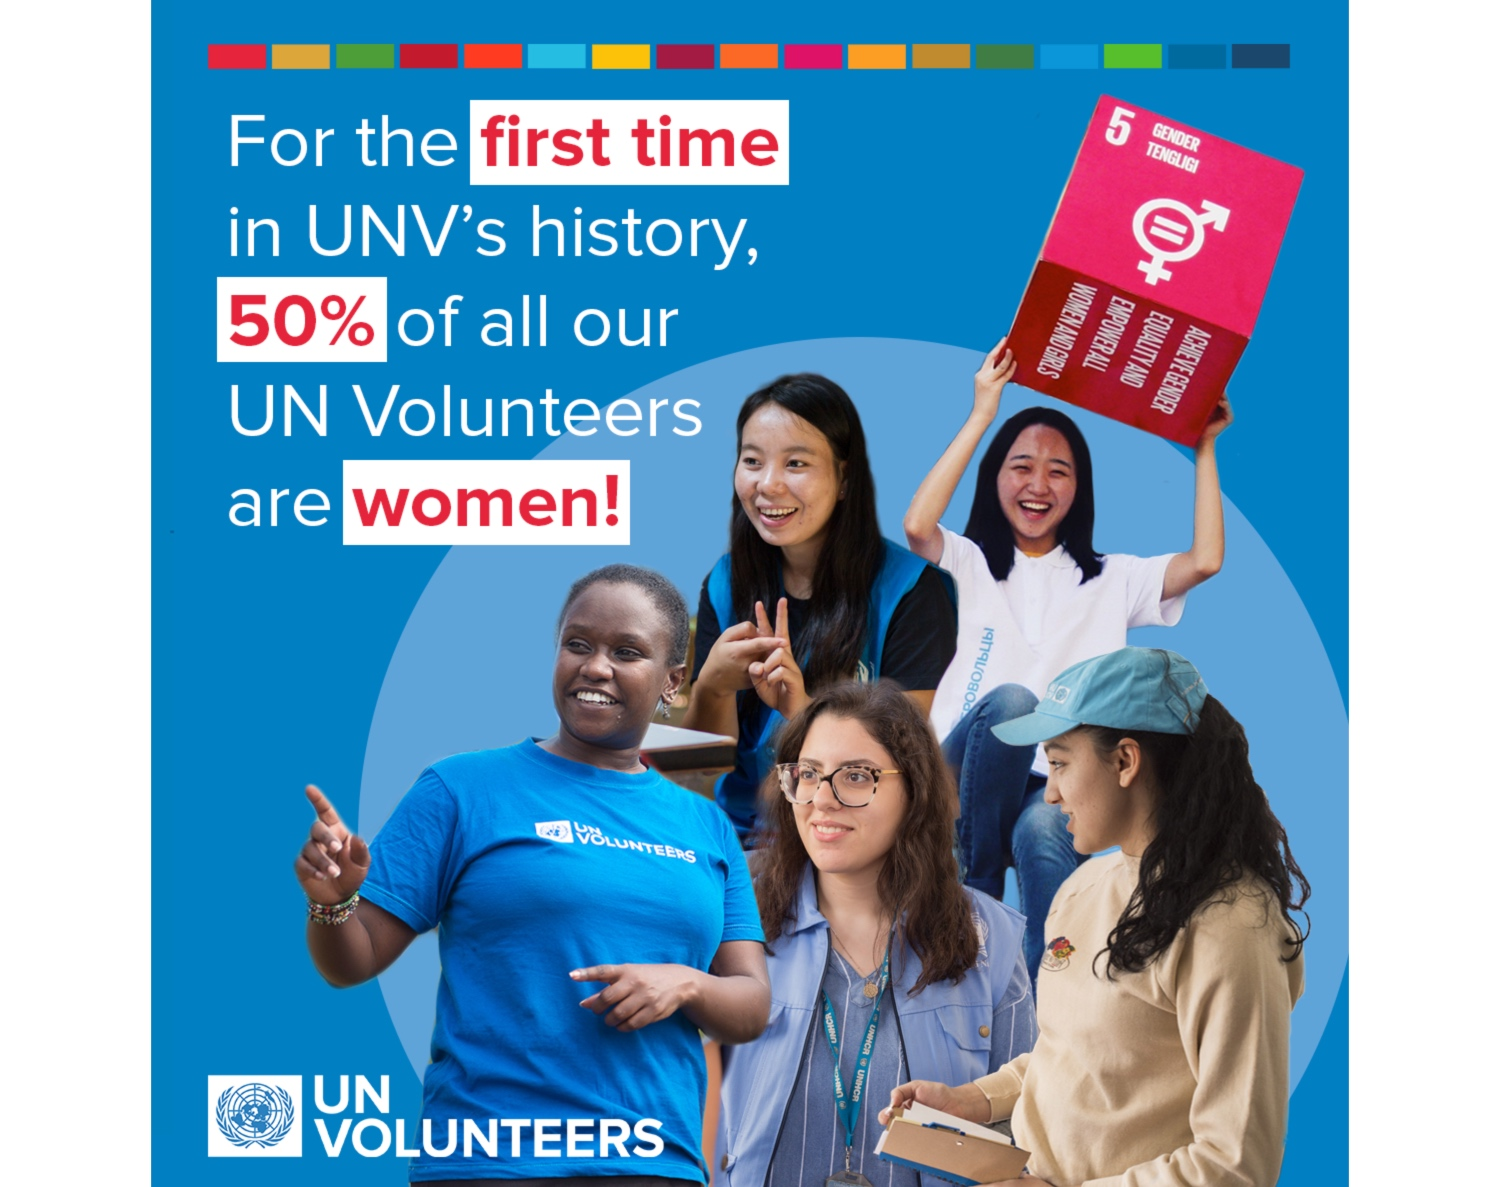 Unv has reached gender parity bbf45ff4 72a1 4765 9ebf f43268125328